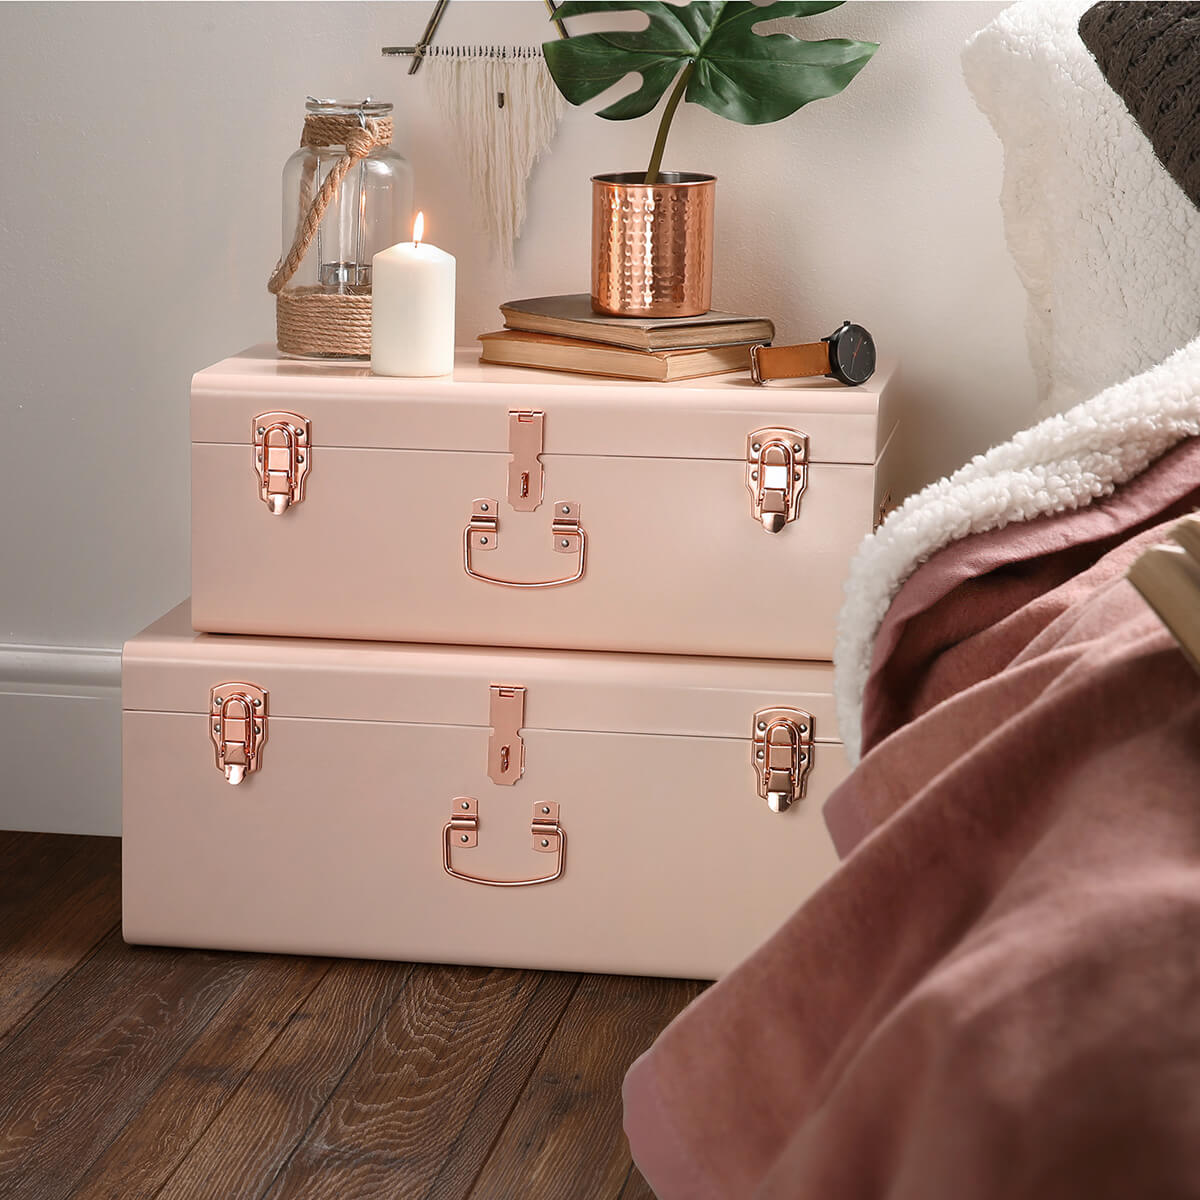 11 blushing tourister stackable bedside luggage trunks - Copper Home Decor